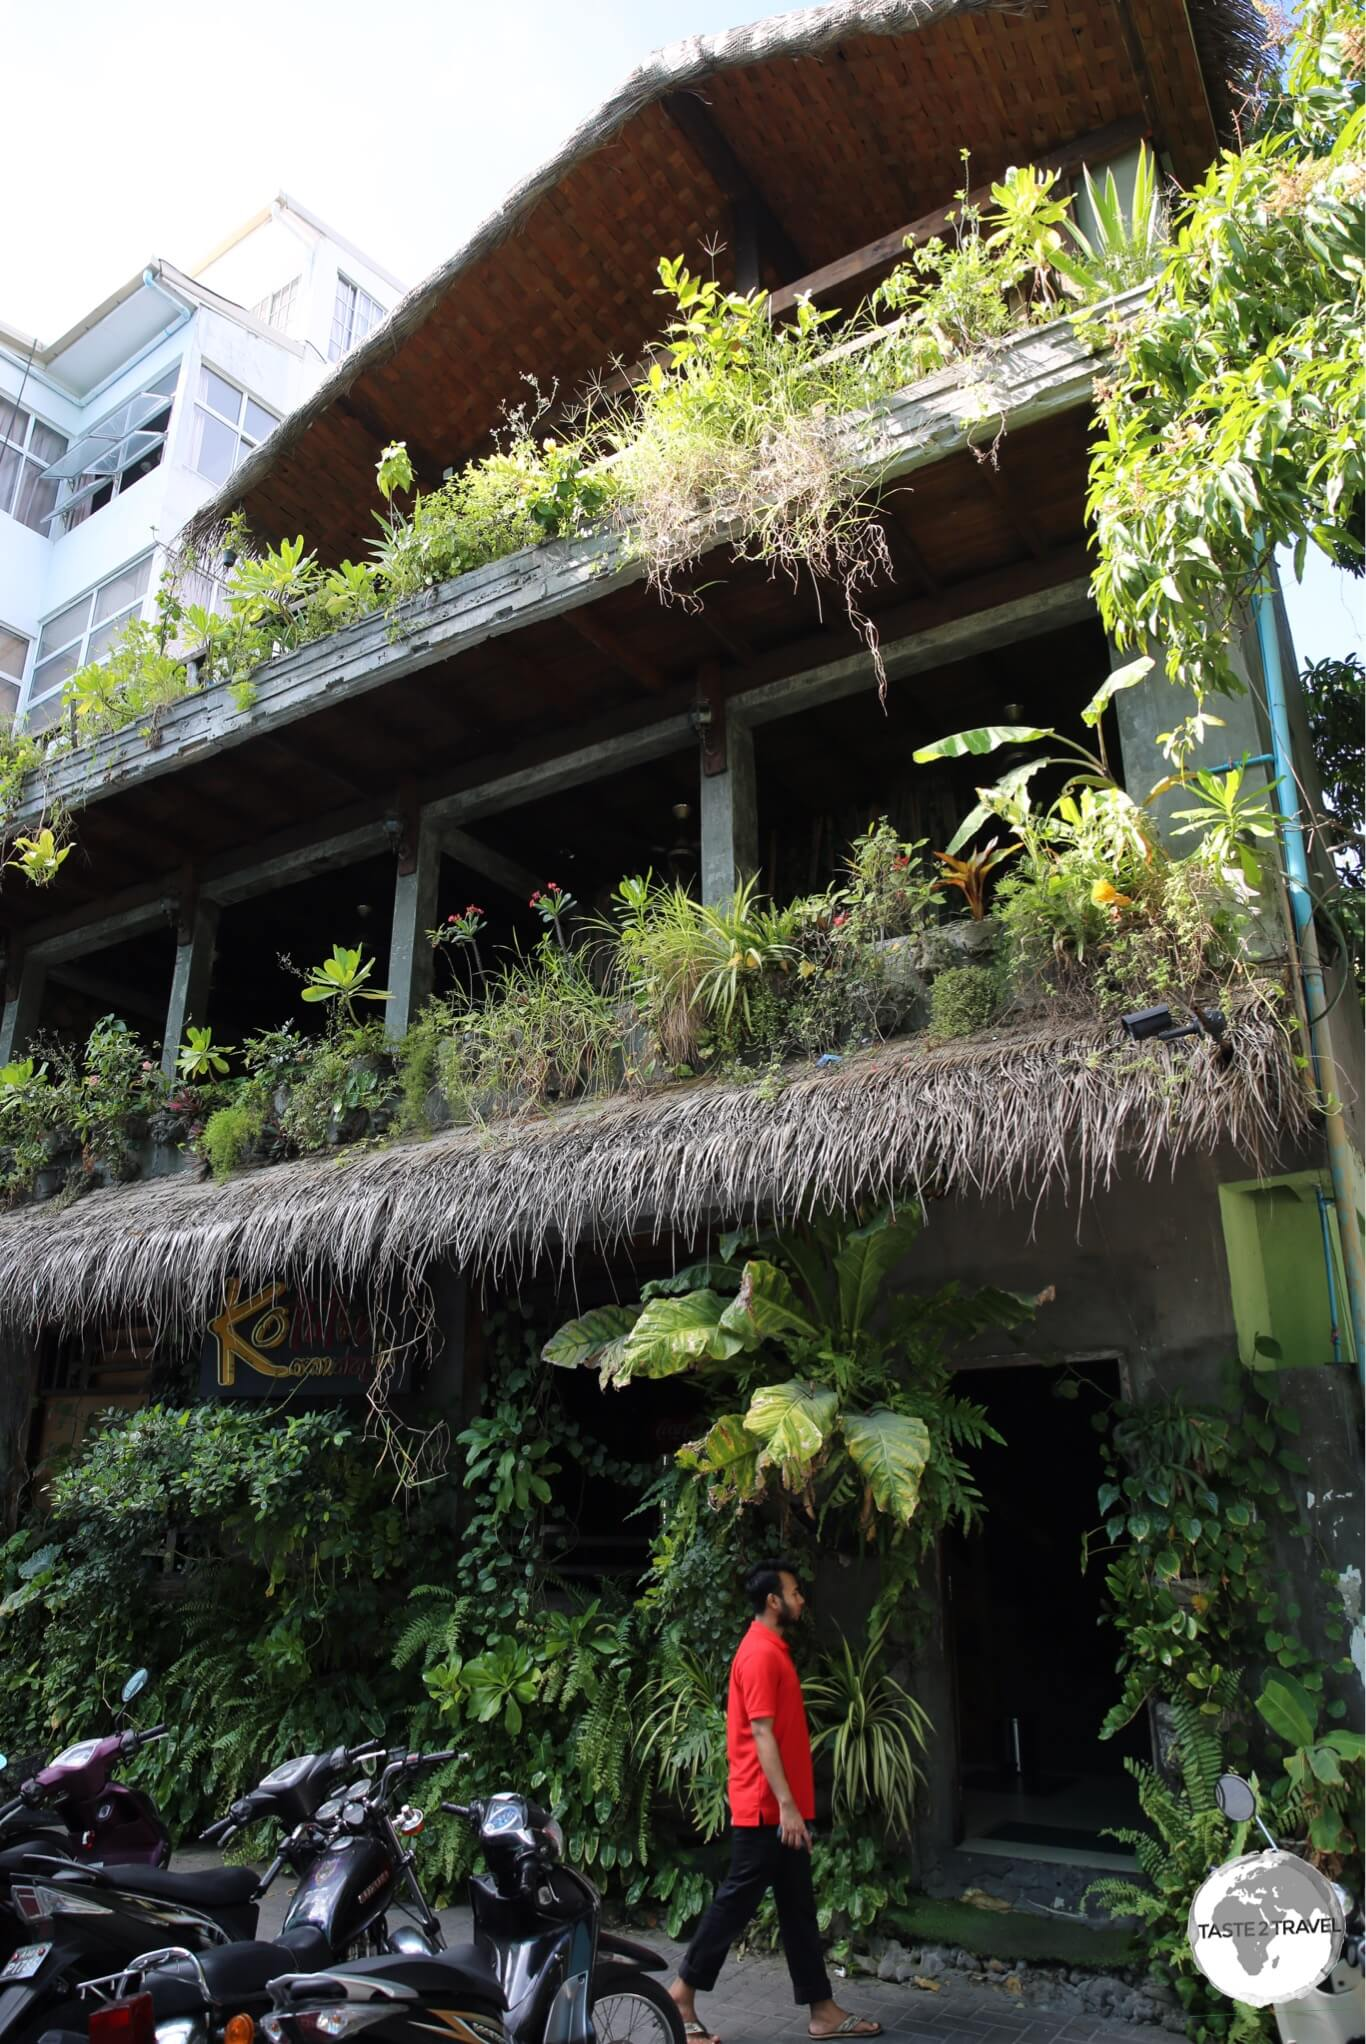 It's hard to miss the green facade of 'Koththu Hut' in downtown Malé.